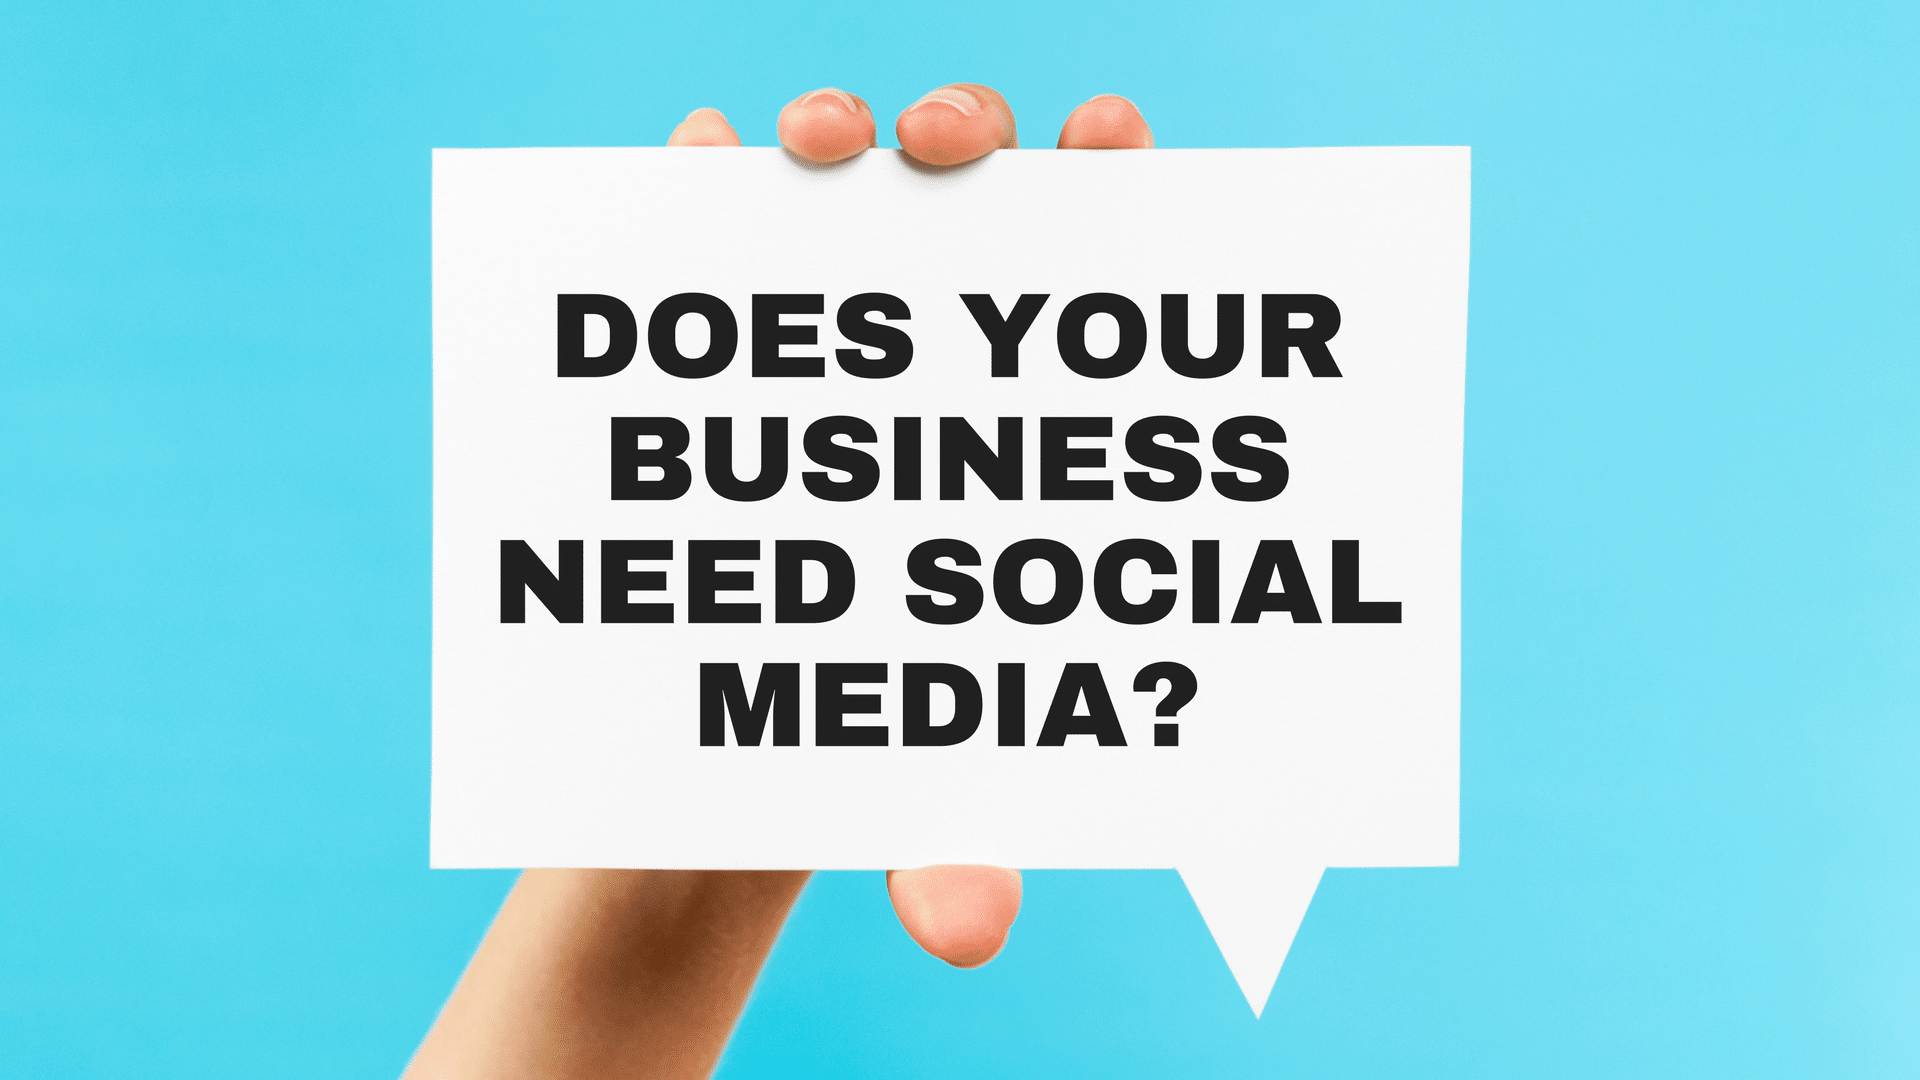 Video: Should You Invest in Social Media? Yes!